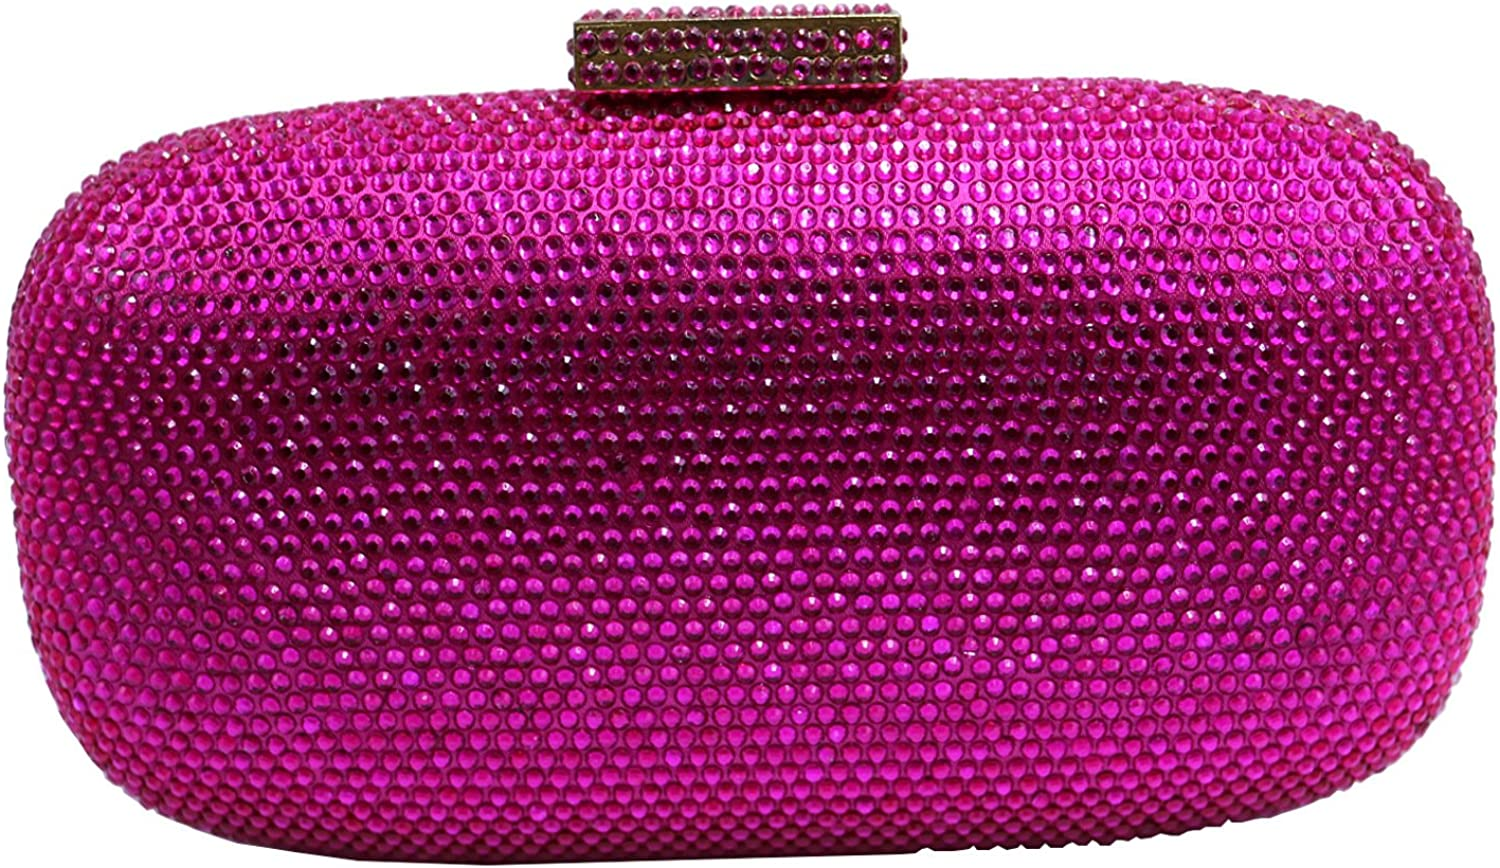 DMIX Womens Crystal Clutches and Evening Bags